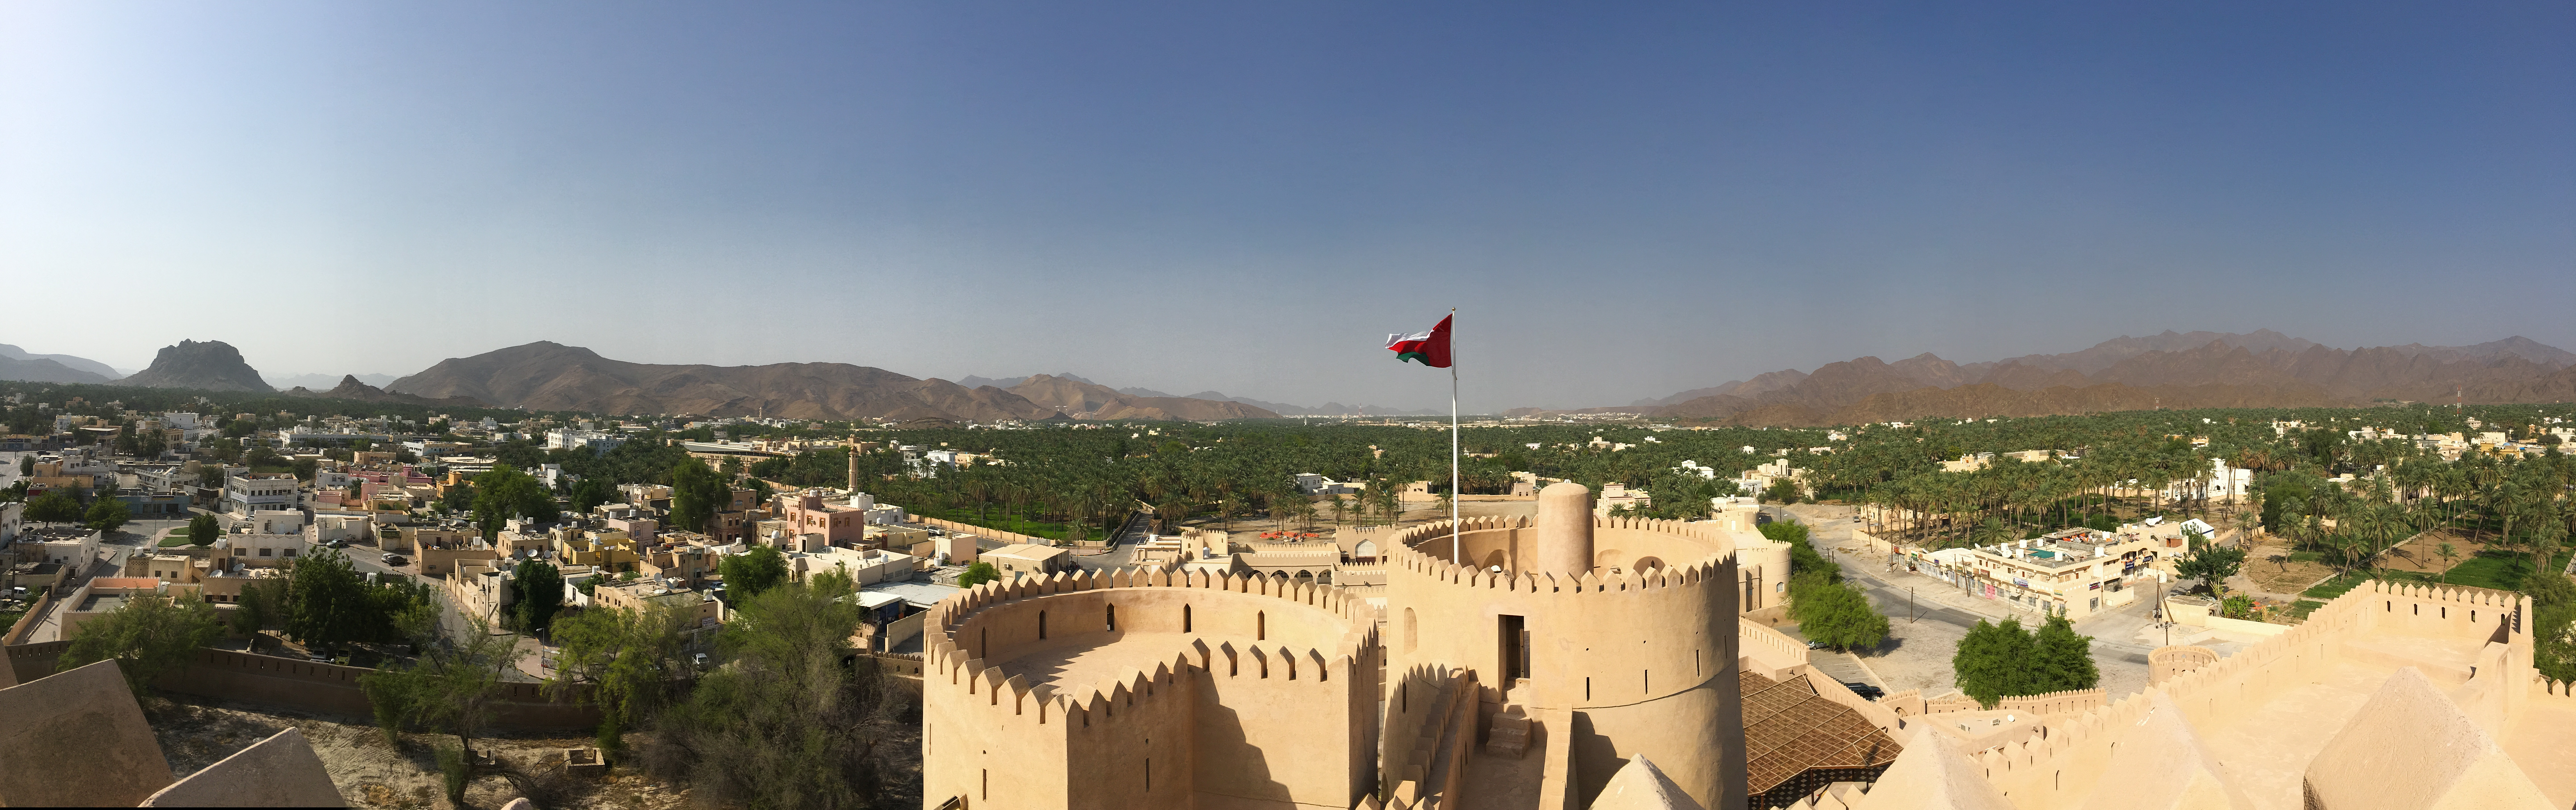 Panorama from the top of Rustaq Fort.